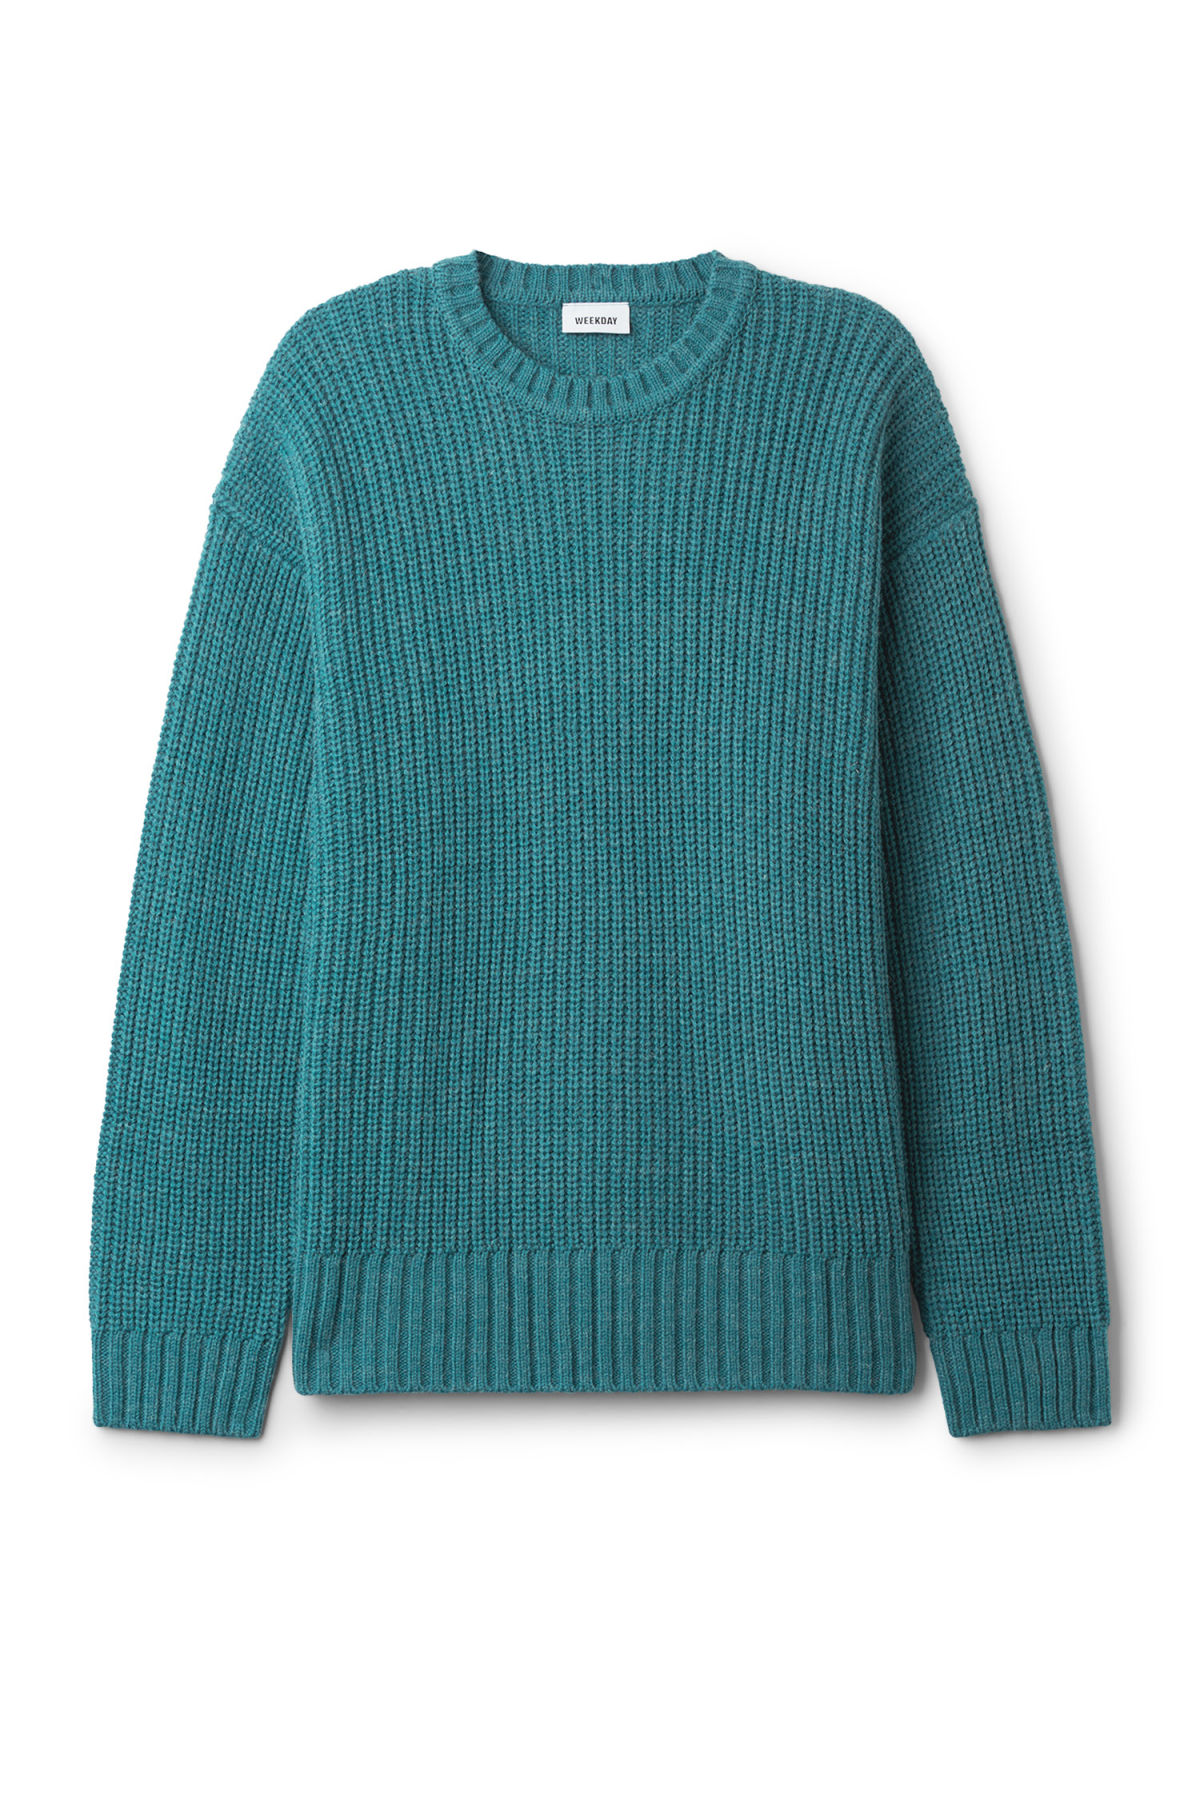 Front image of Weekday dieago sweater in turquoise